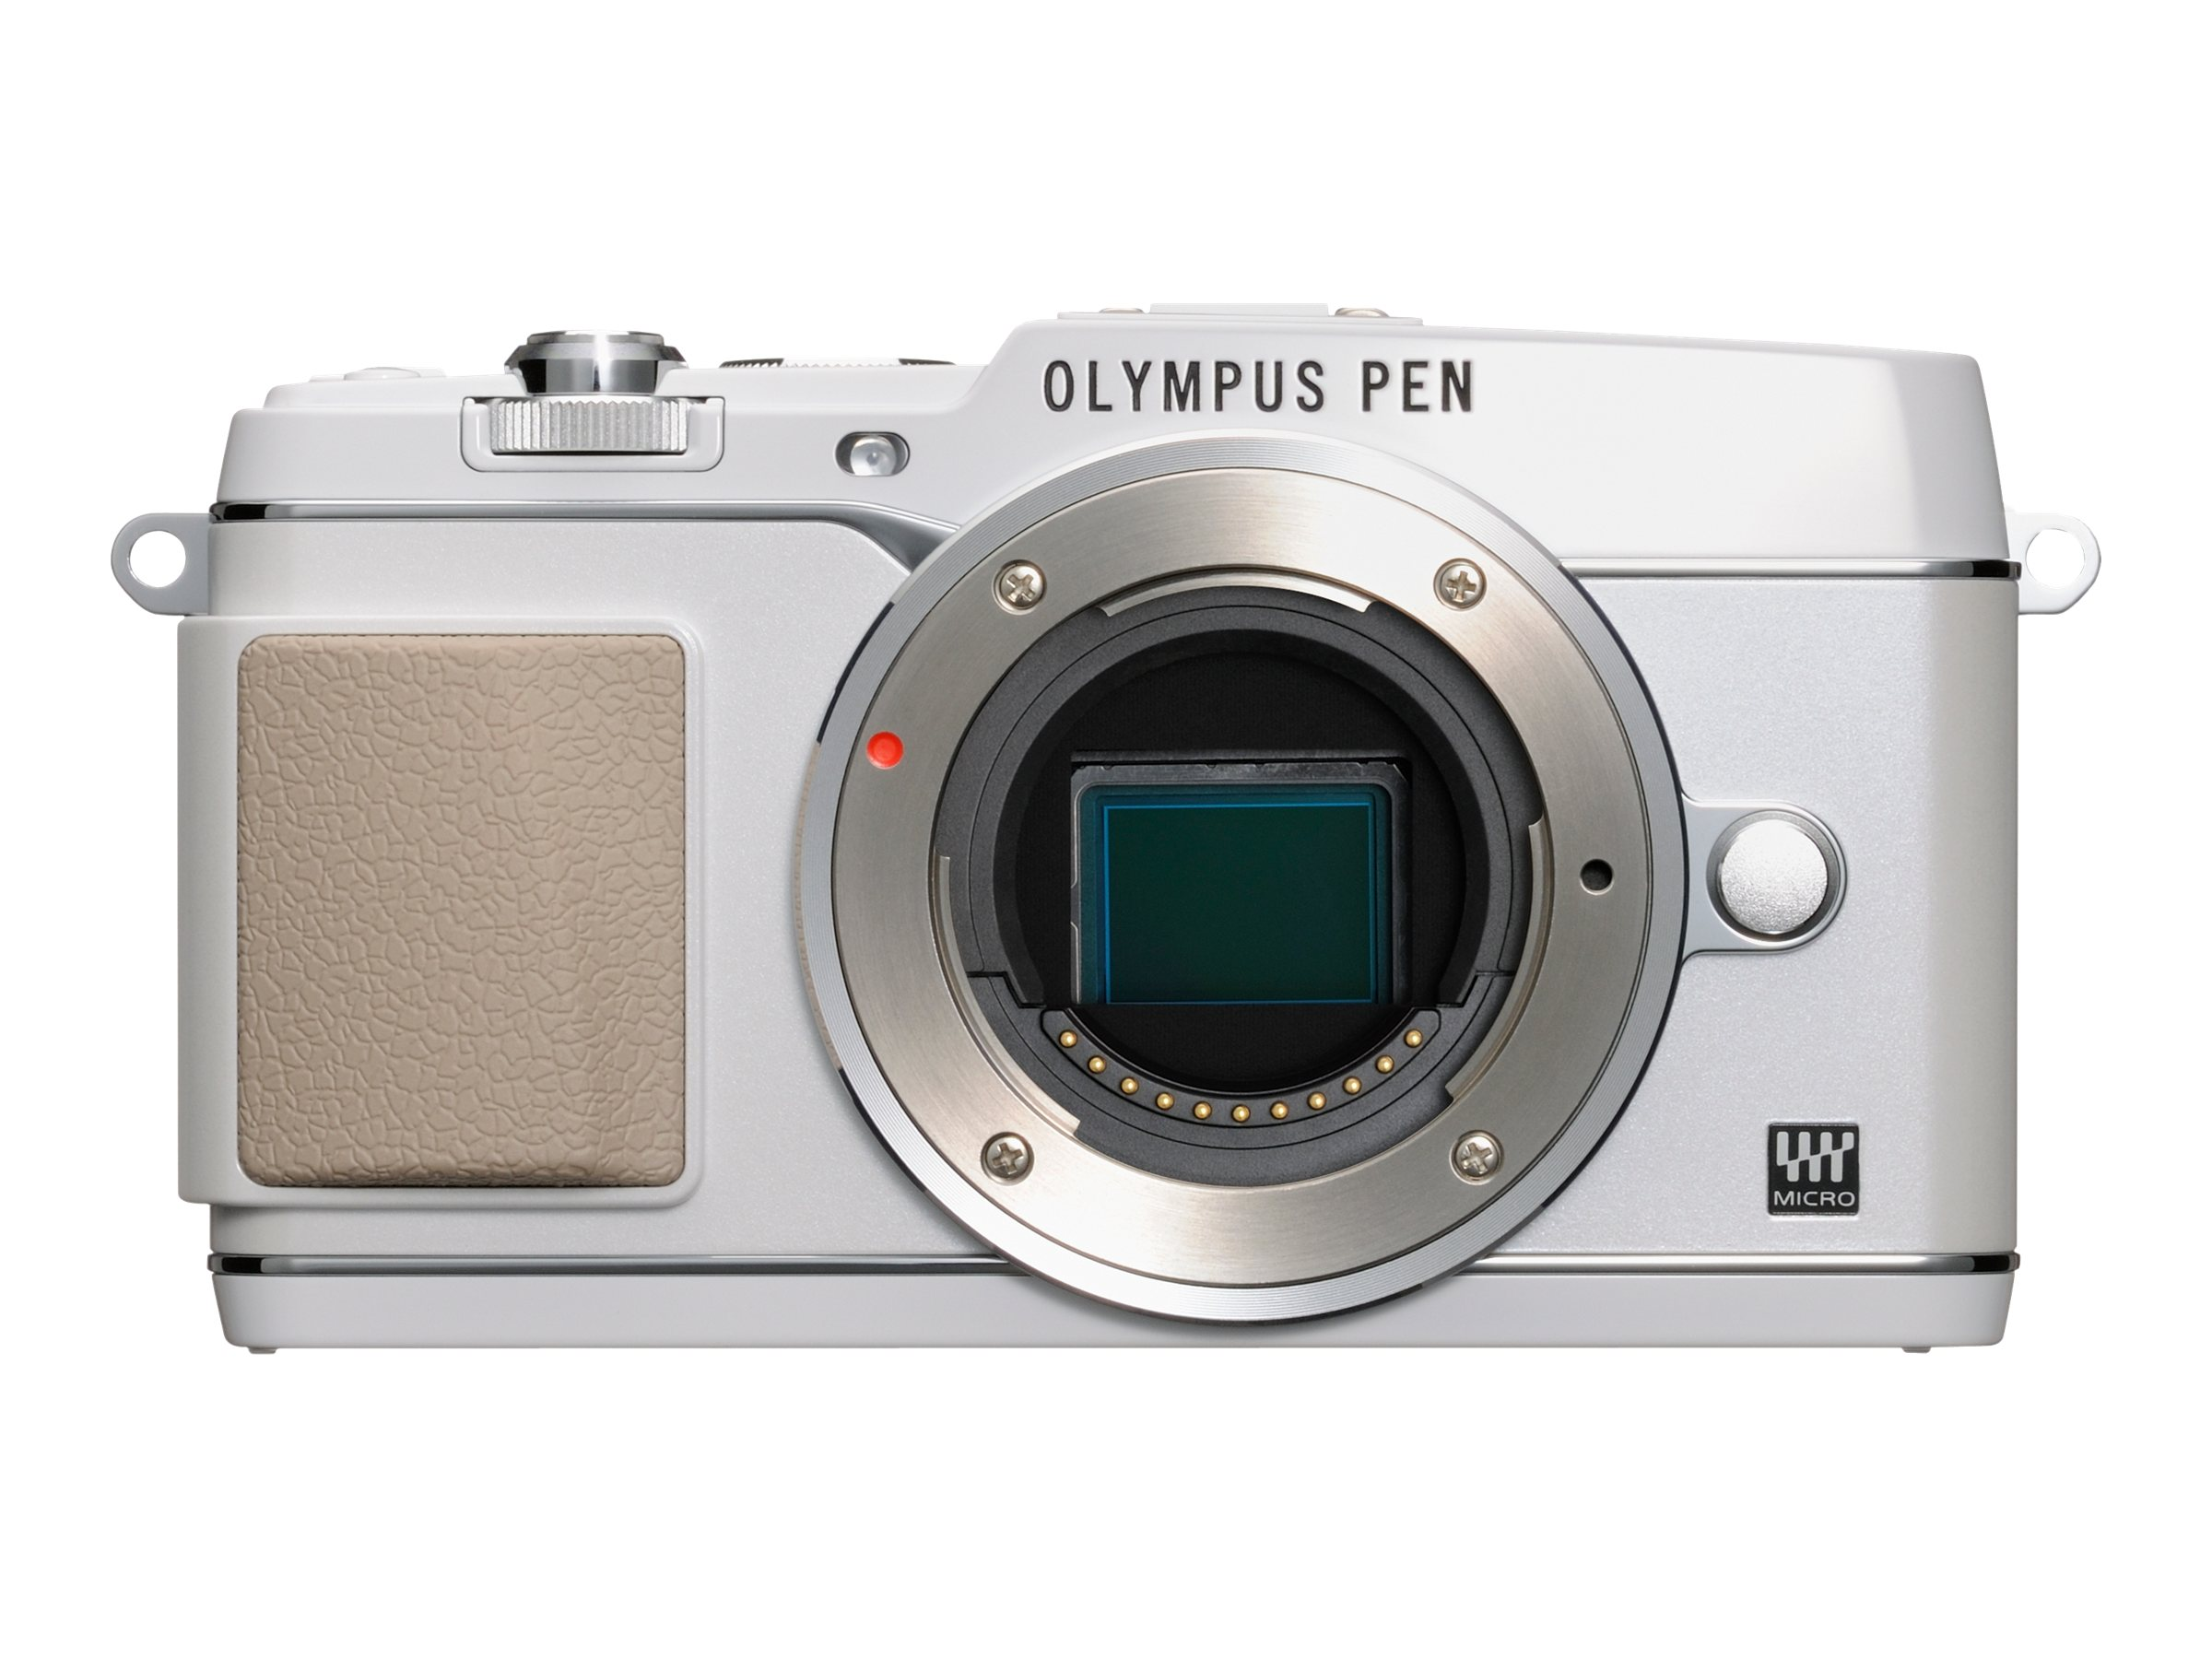 Olympus E-P5 PEN Mirrorless Digital Camera, White, V204050WU000, 15751907, Cameras - Digital